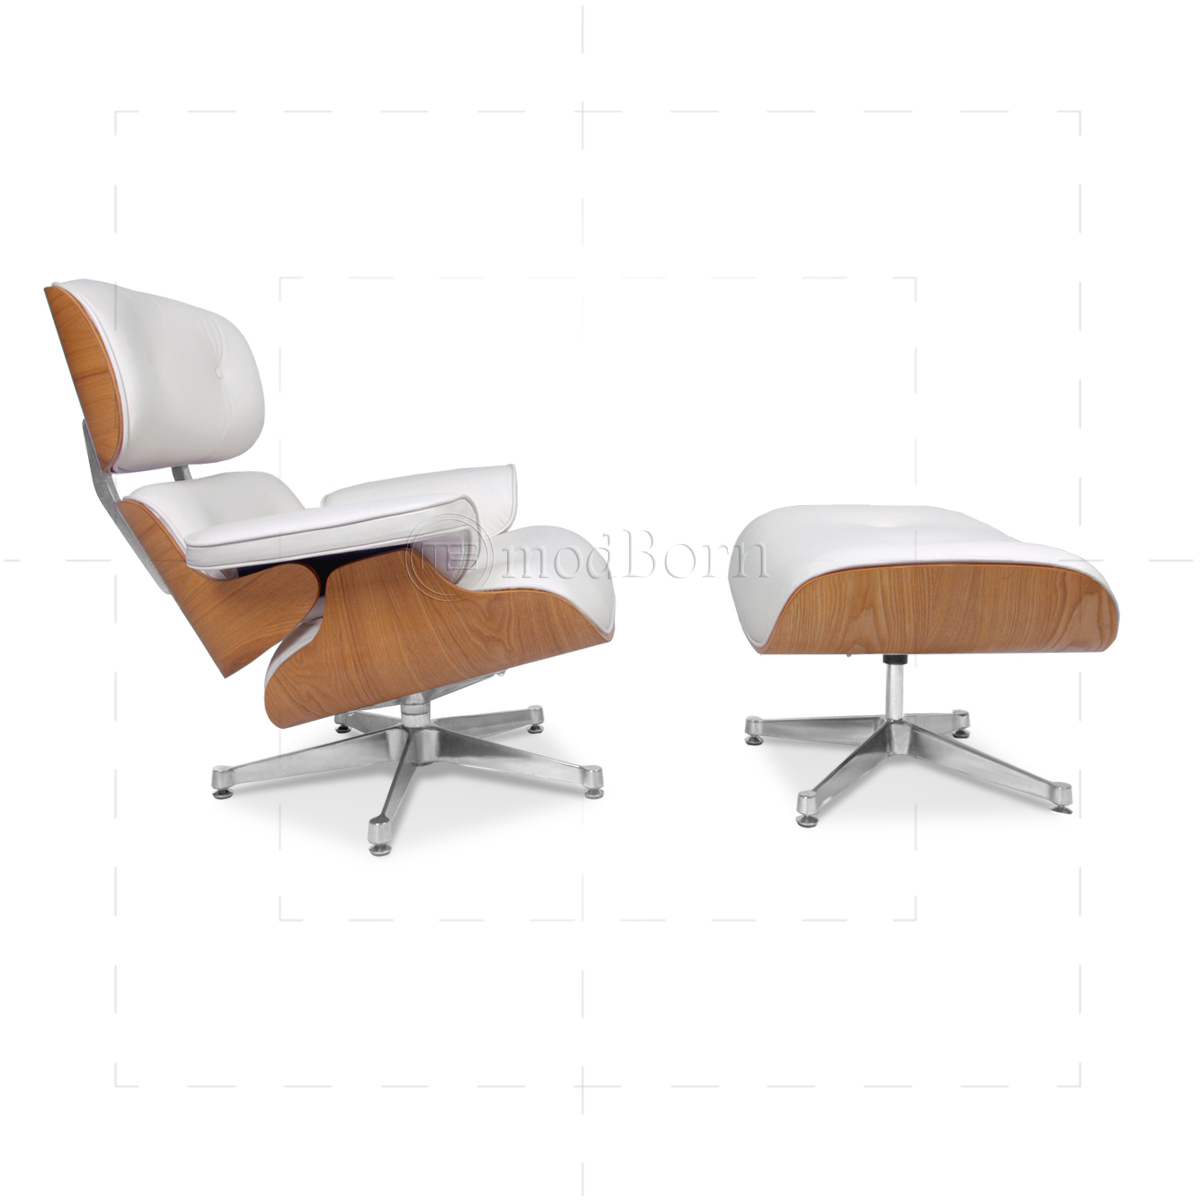 Terrific Eames Style Lounge Chair And Ottoman White Leather Ash Unemploymentrelief Wooden Chair Designs For Living Room Unemploymentrelieforg